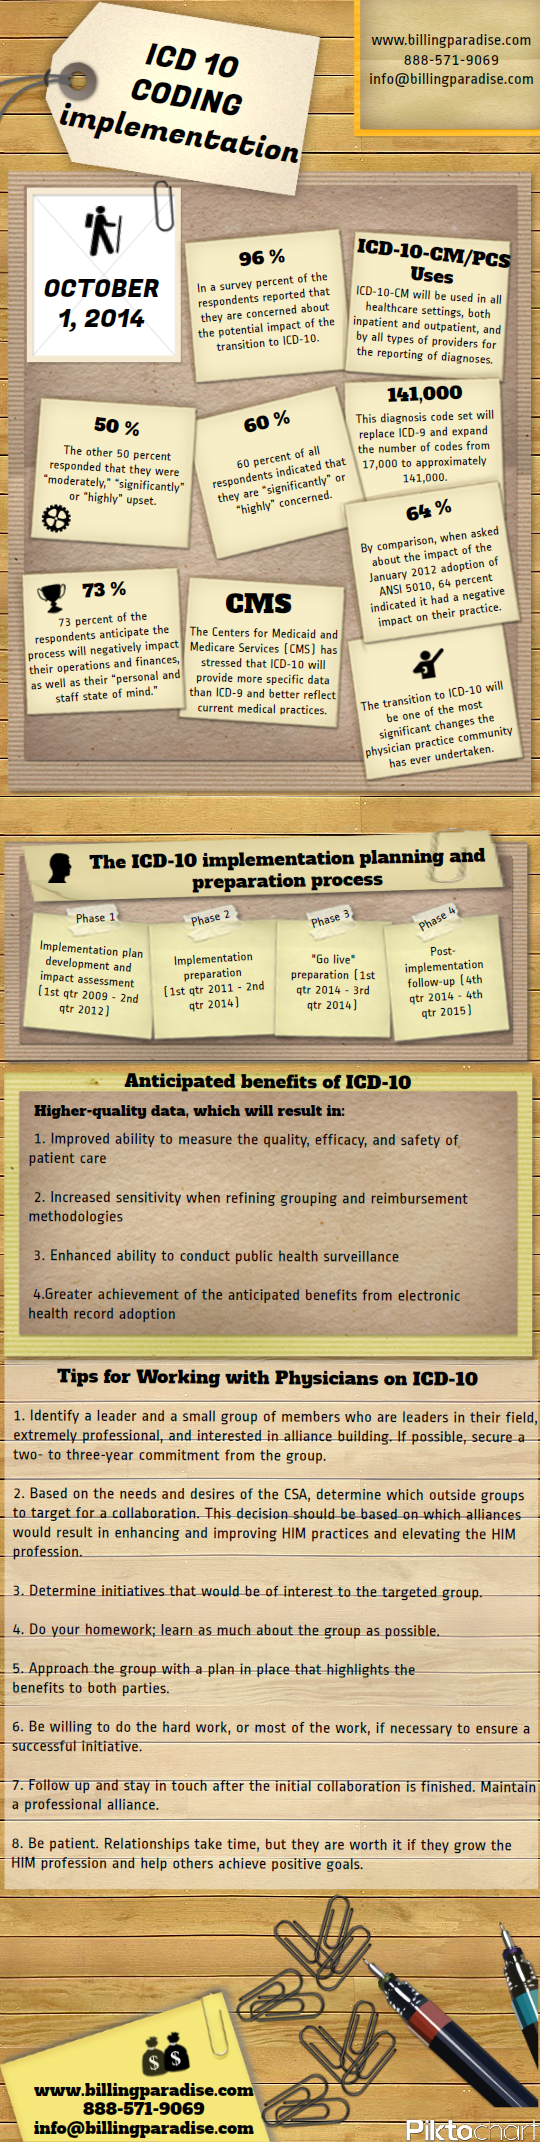 Tutorial How To Code An Inpatient Record Welcome Assigning Icd 10 Cm And Pcs Codes Diagnoses Procedures For Inp